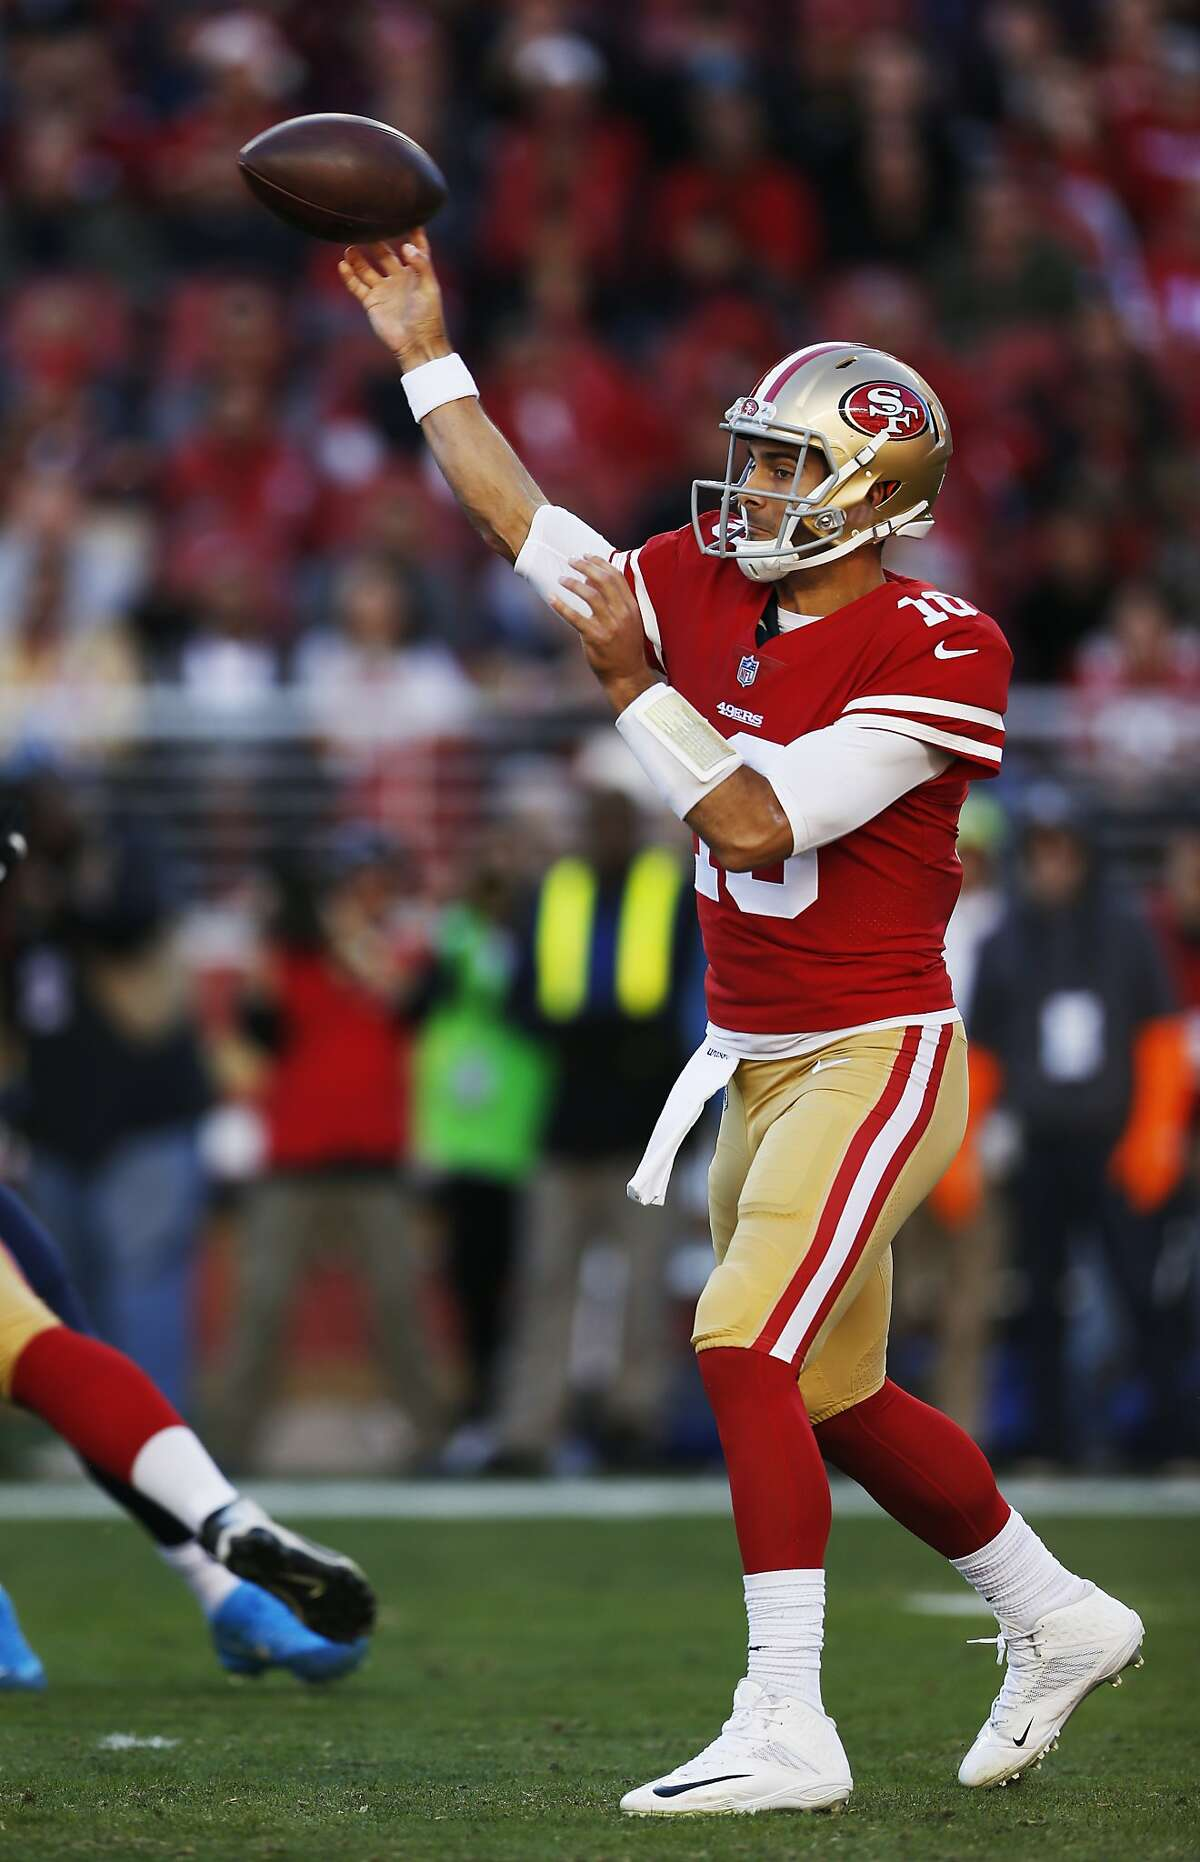 San Francisco 49ers quarterback Jimmy Garoppolo throws against the Tennessee Titans during the first half of an NFL football game Sunday, Dec. 17, 2017, in Santa Clara, Calif. (AP Photo/D. Ross Cameron)